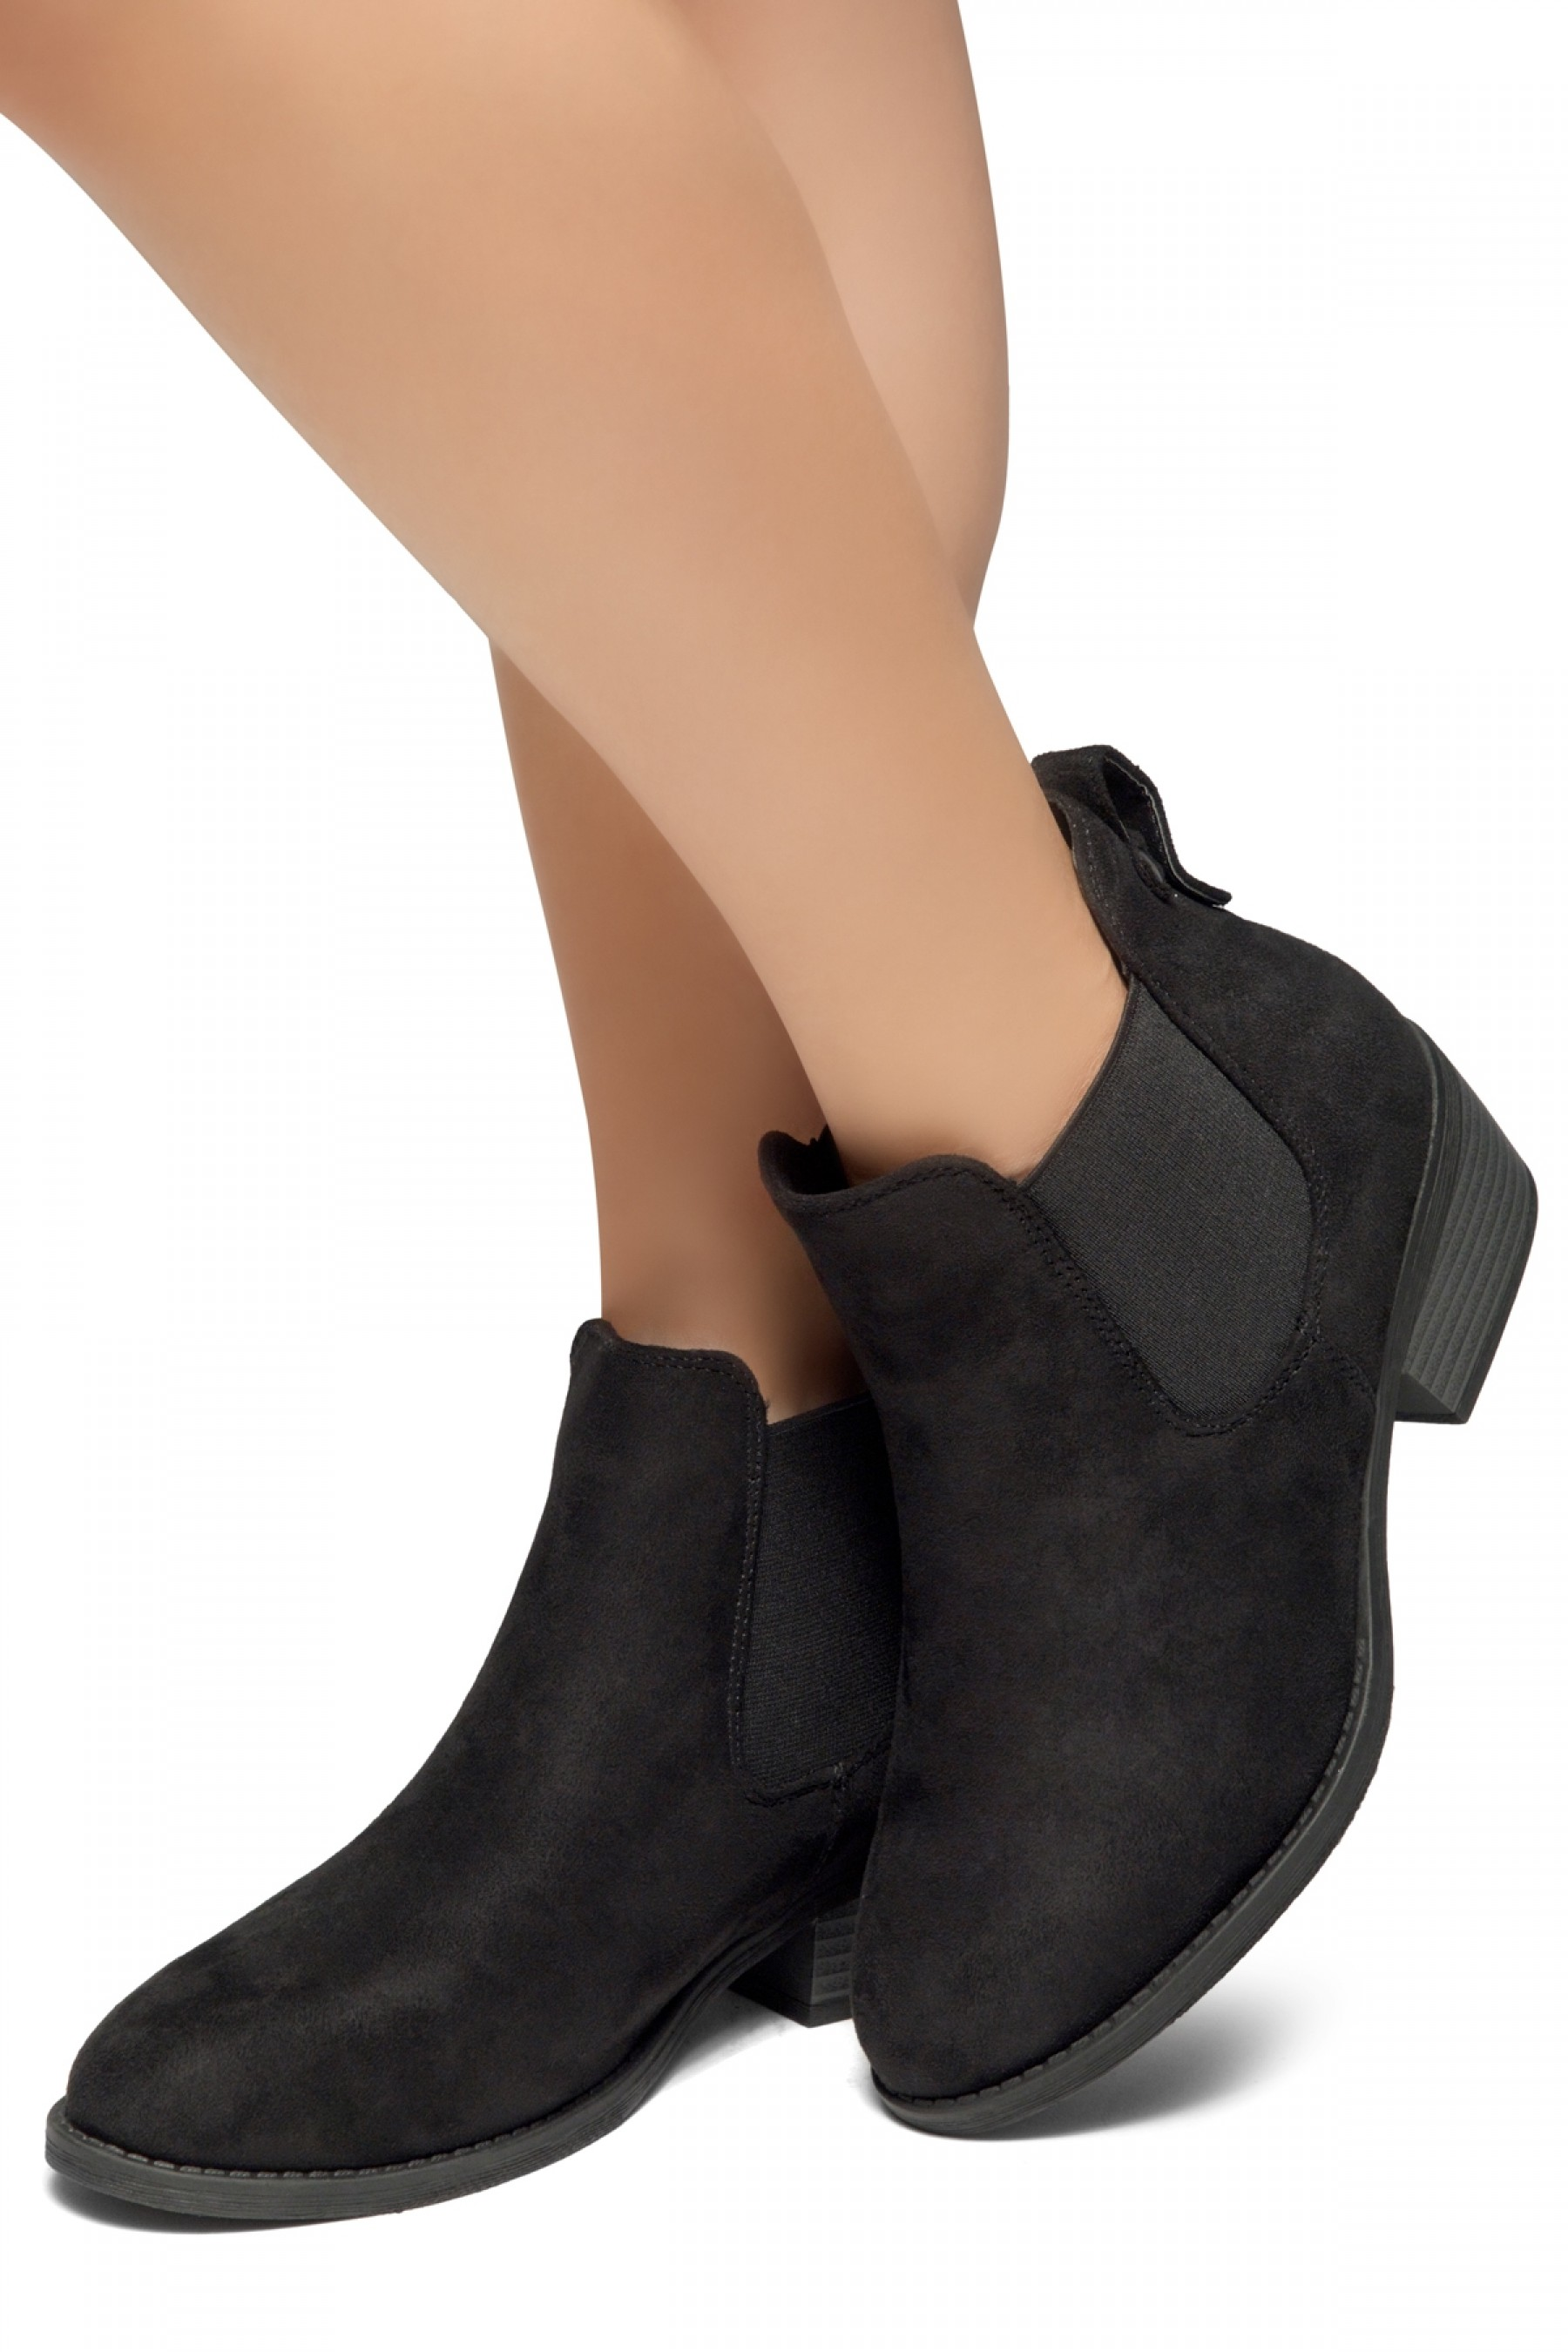 abc761edbe3 HerStyle Chelsea Booties-Casual Ankle Booties With Low Stacked ...